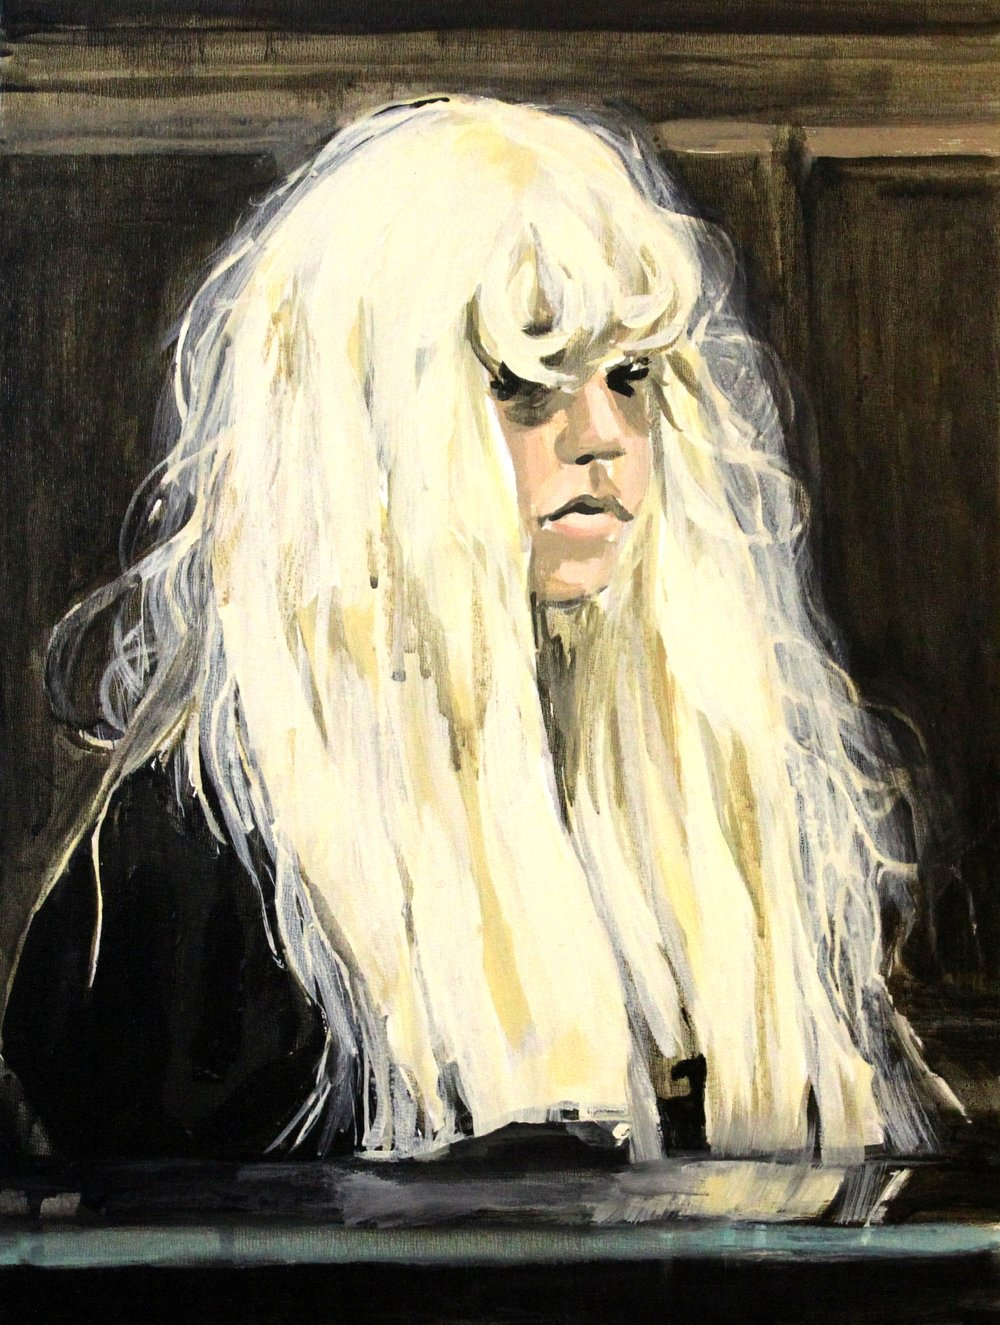 "Amanda Bynes Wearing a Wig in Court 12"" x 16"" acrylic on panel"